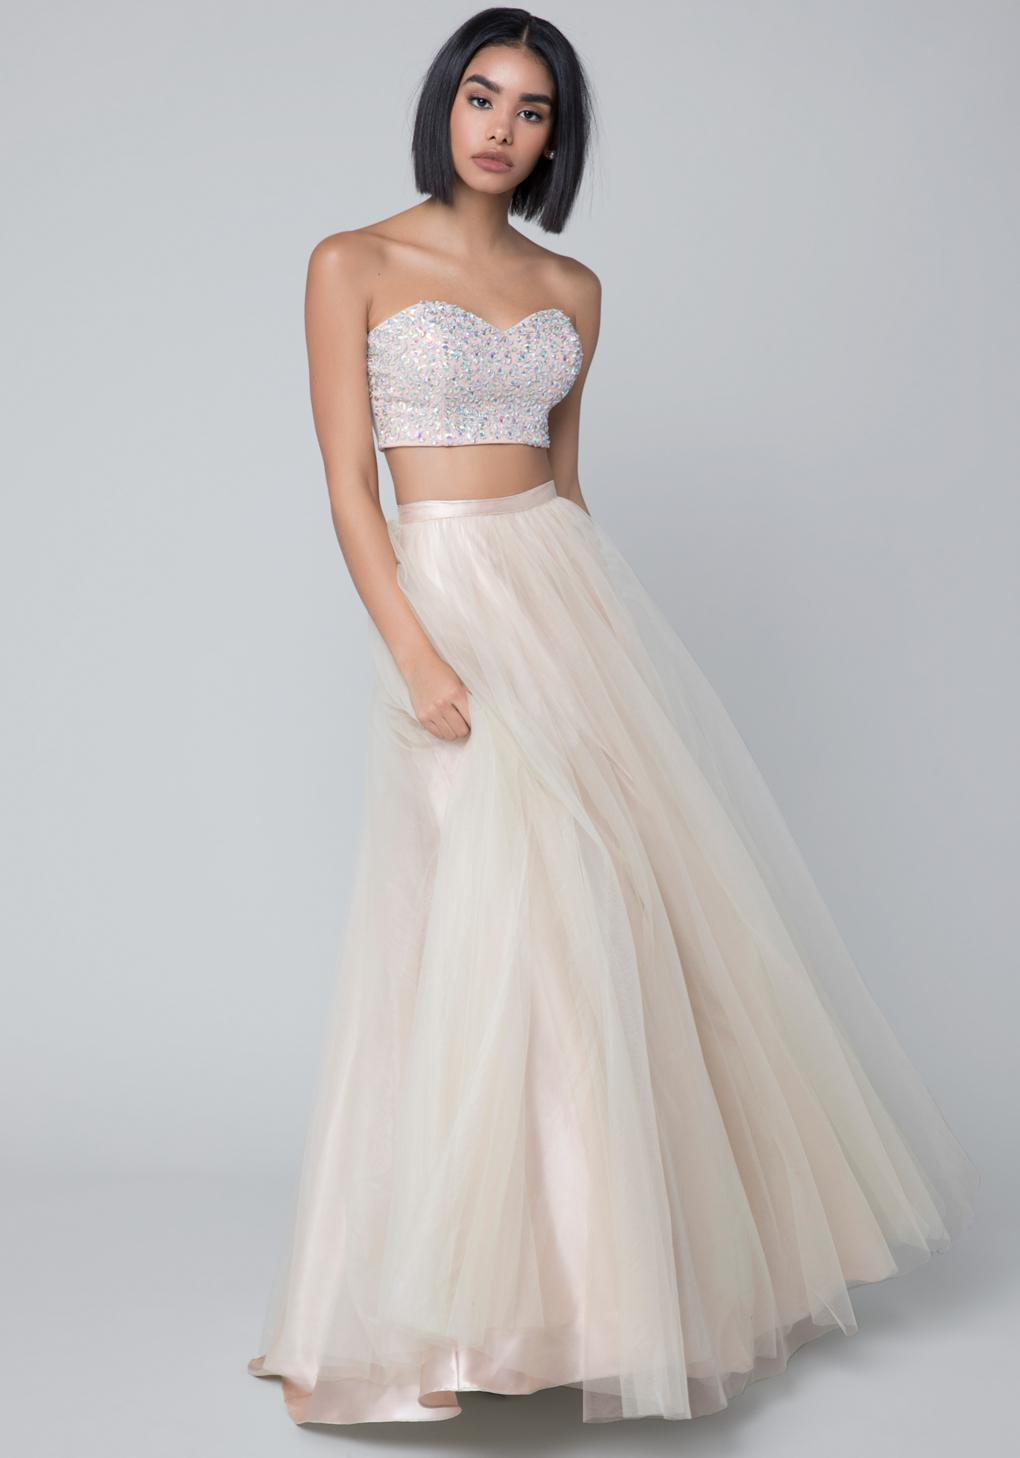 Lyst - Bebe Embellished 2-piece Gown